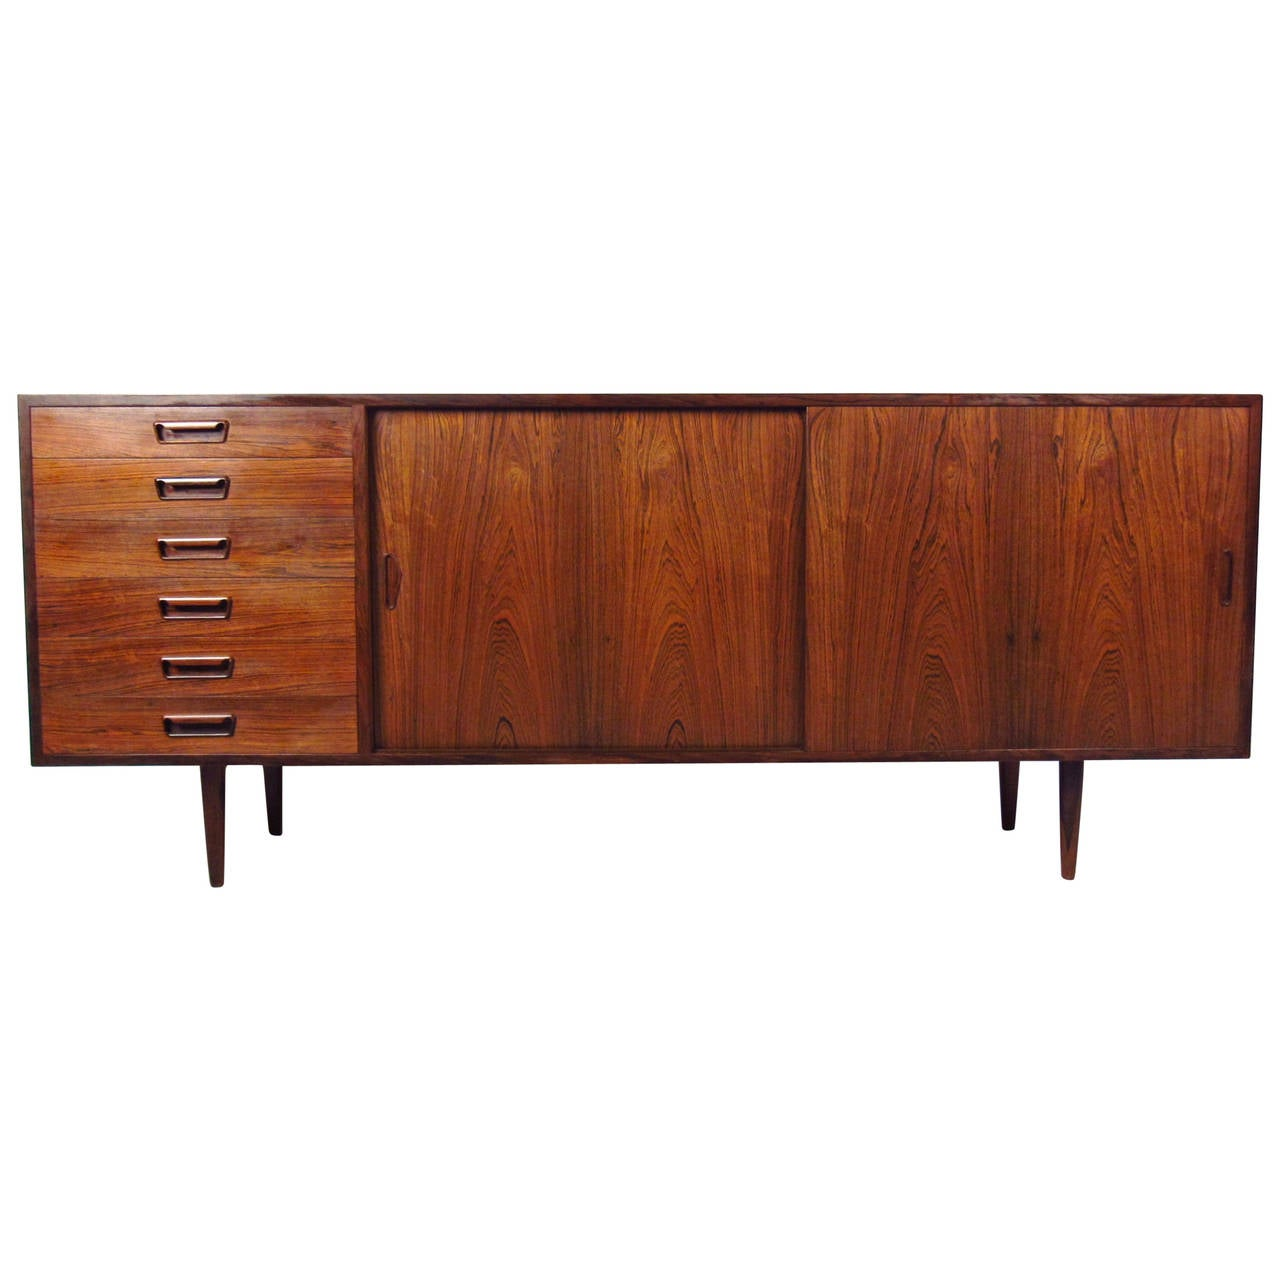 Exquisite Danish Rosewood Sideboard